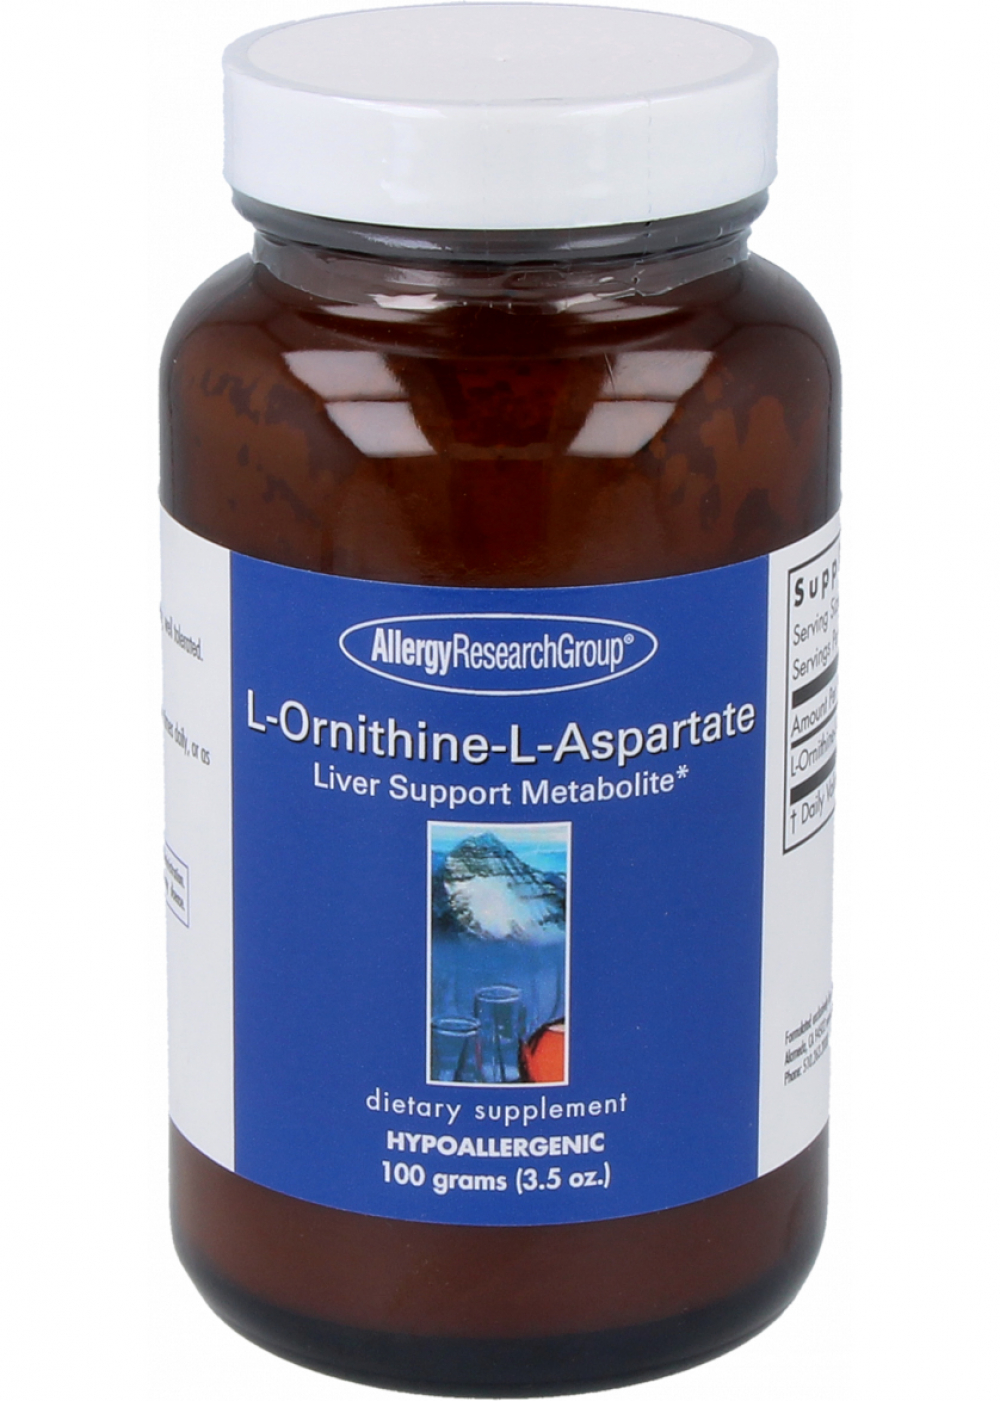 Allergy Research Group L-Ornithine-L-Aspartate 100g Pulver